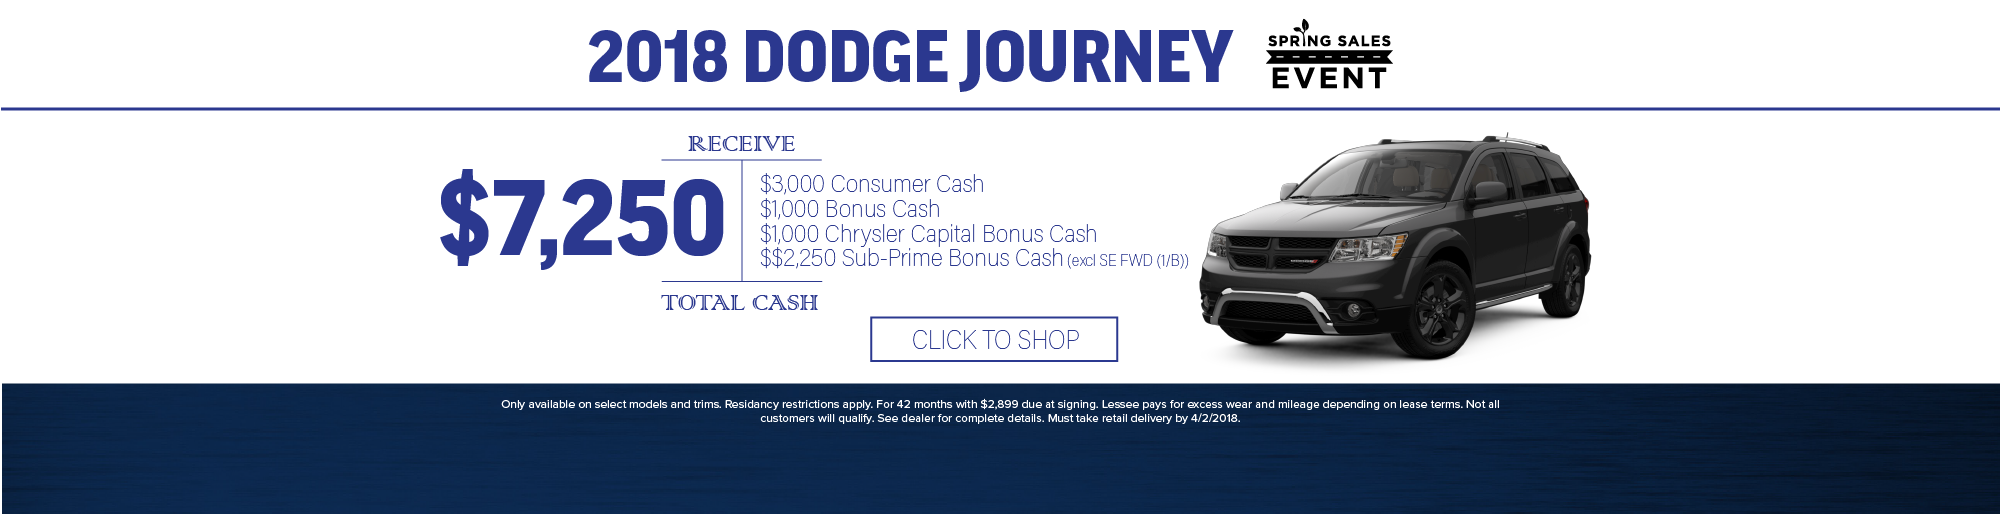 McClane Motor Sales New Chrysler Dodge Jeep Ram Dealership In - Chrysler capital bonus cash